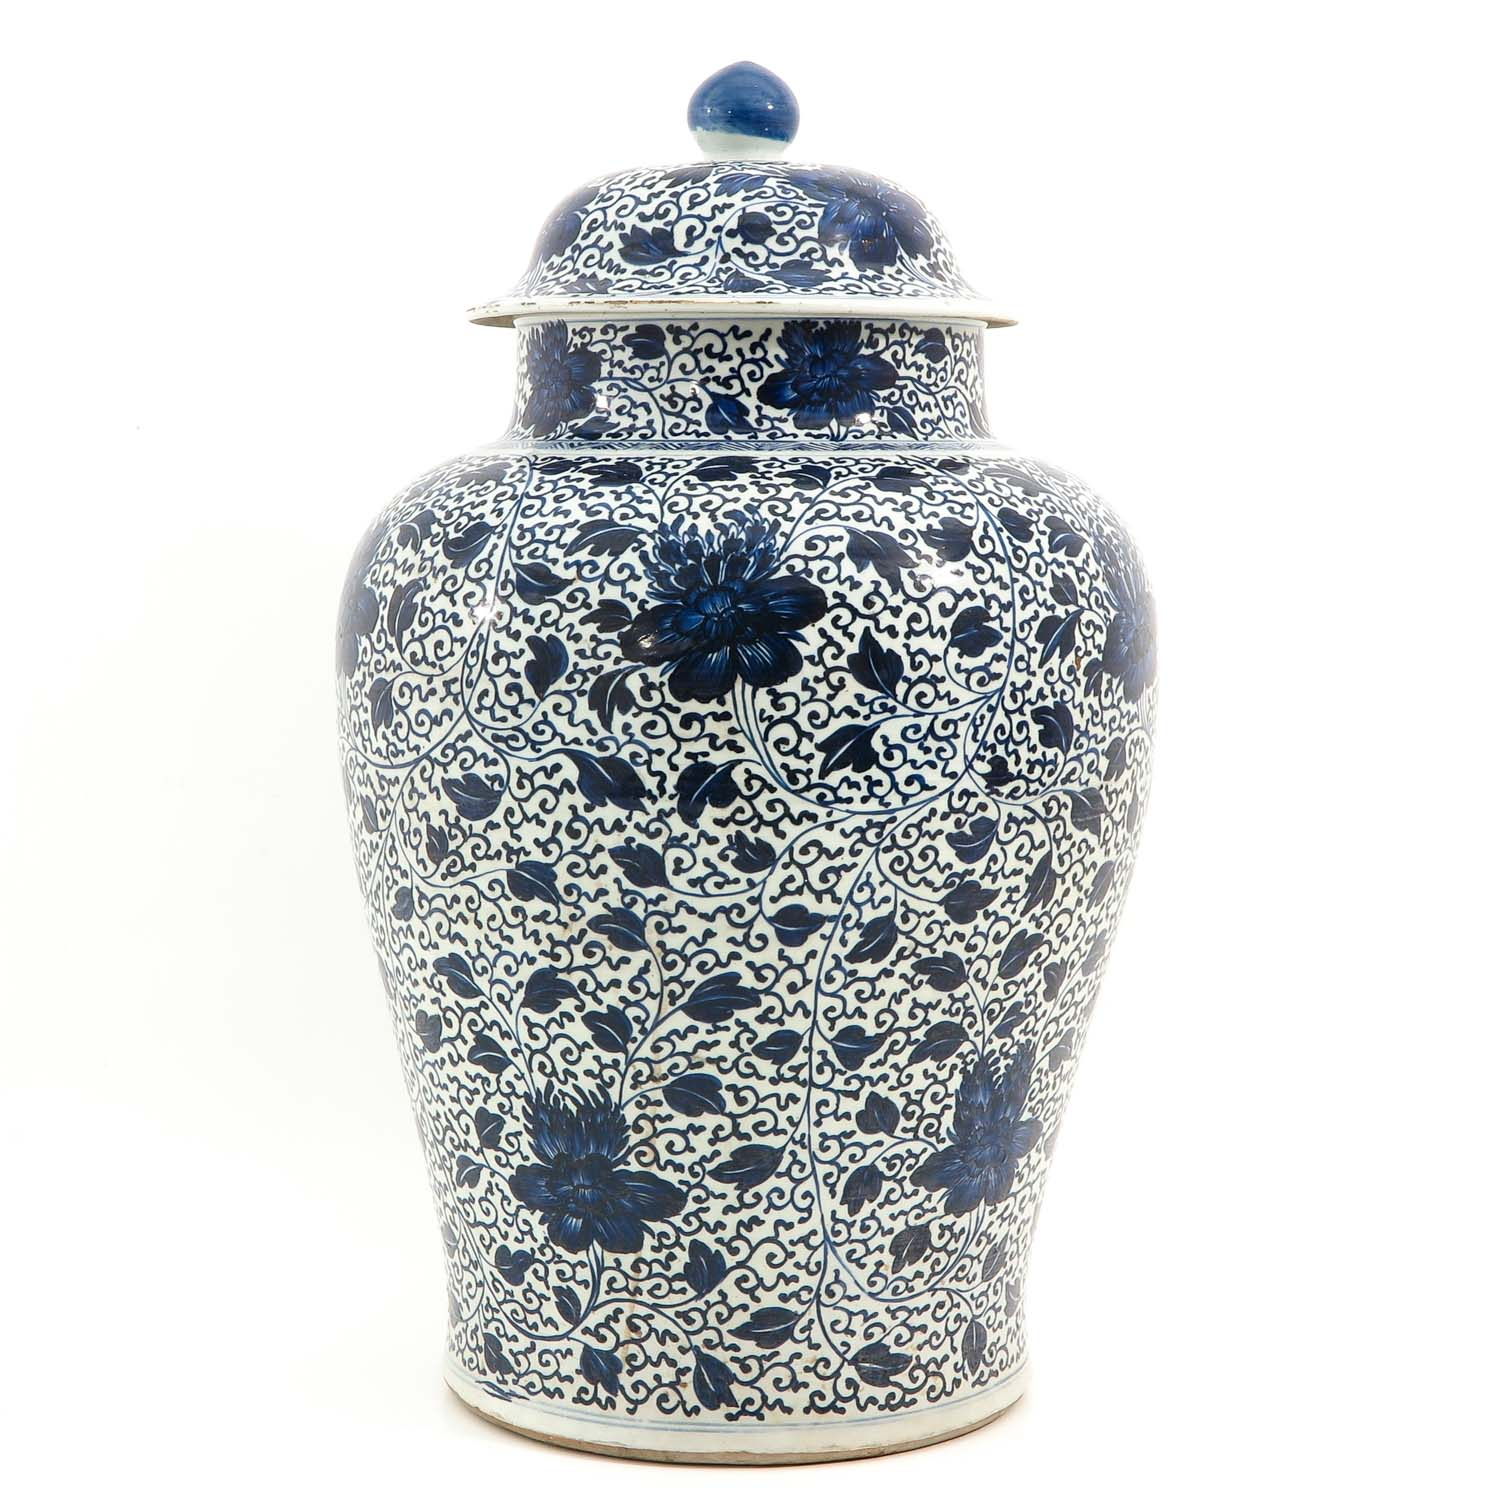 A Large Blue and White Jar - Image 2 of 9